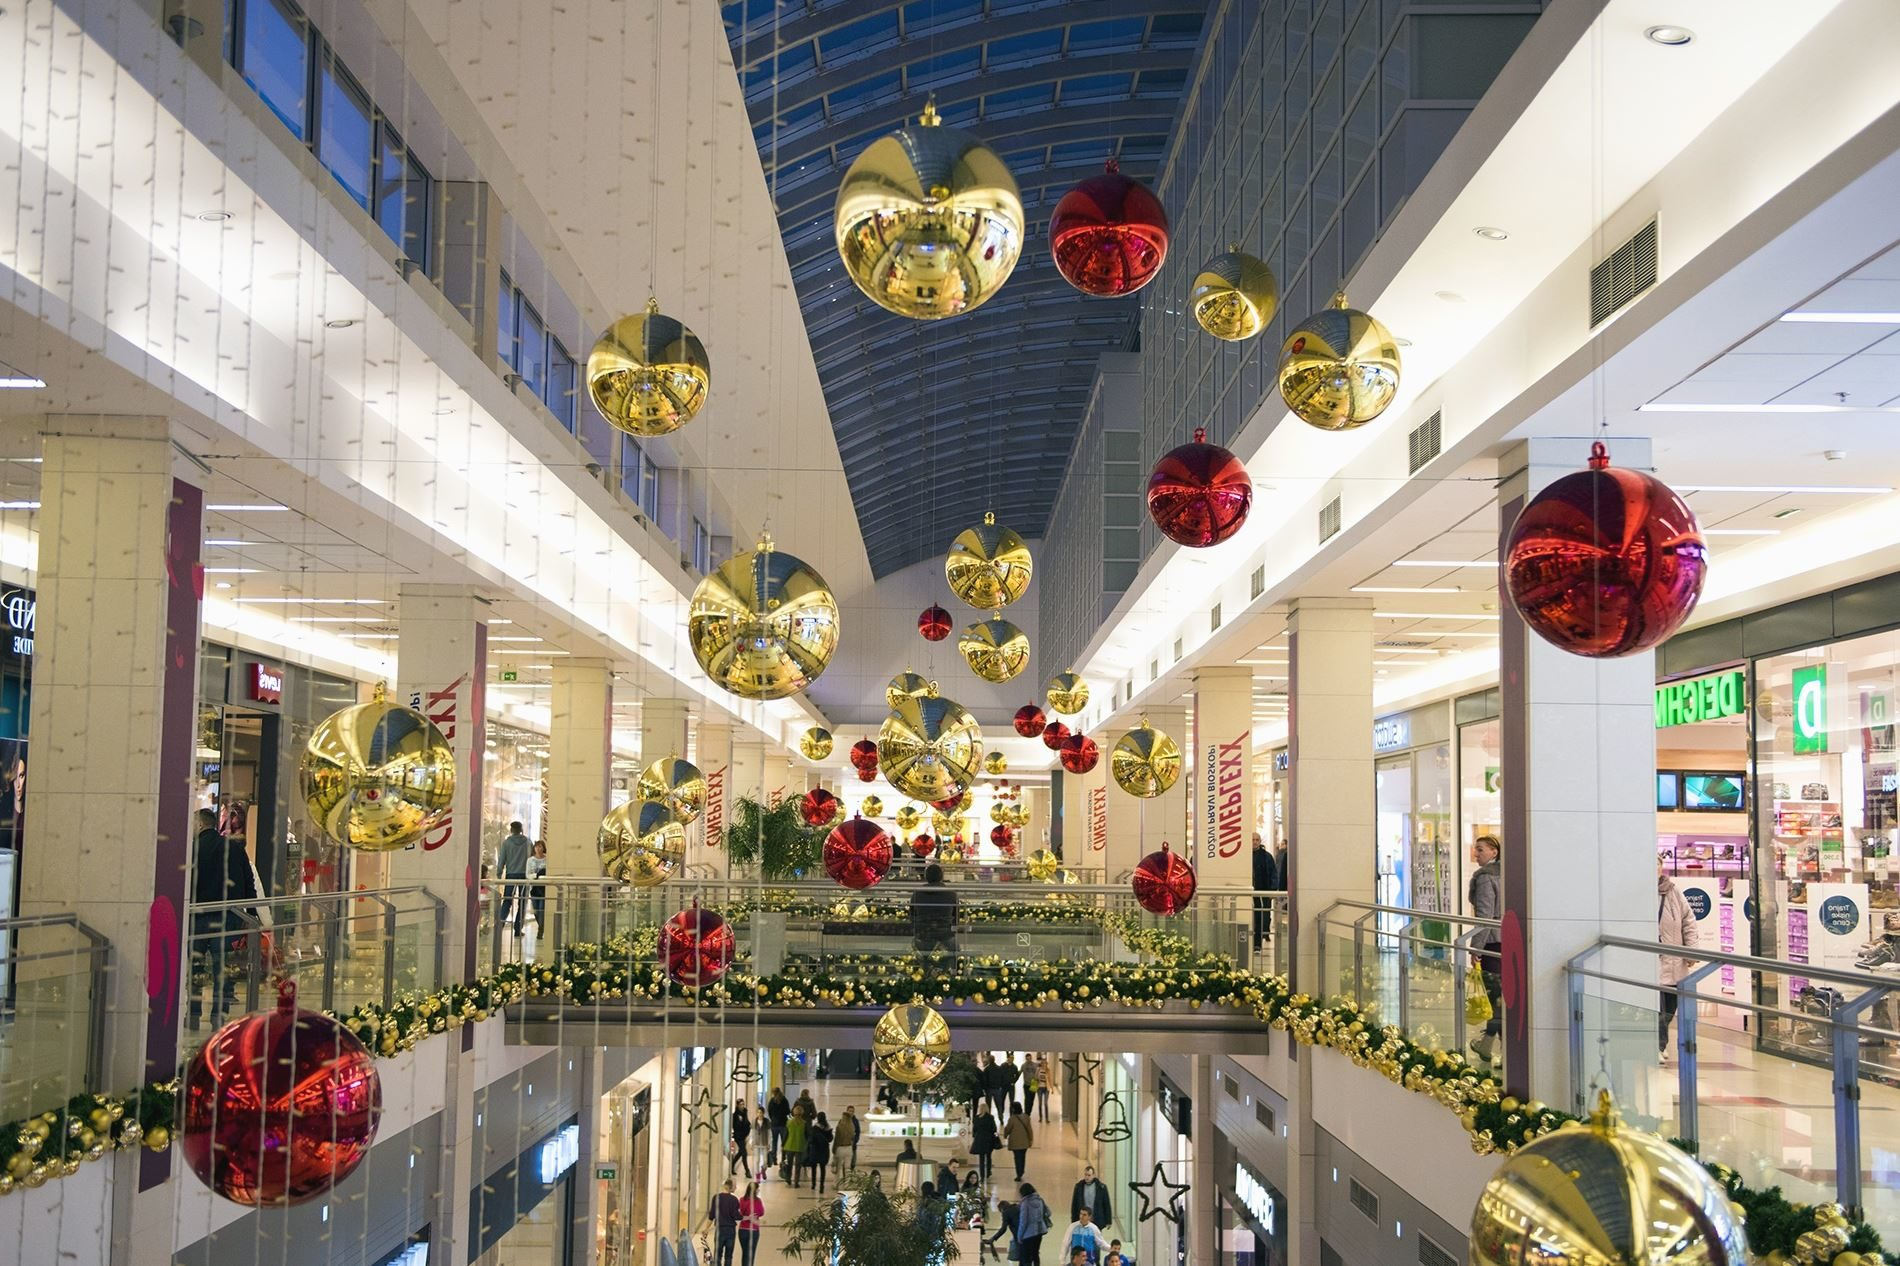 Christmas, Decoration, Shop, Shopping Center, People, Holiday